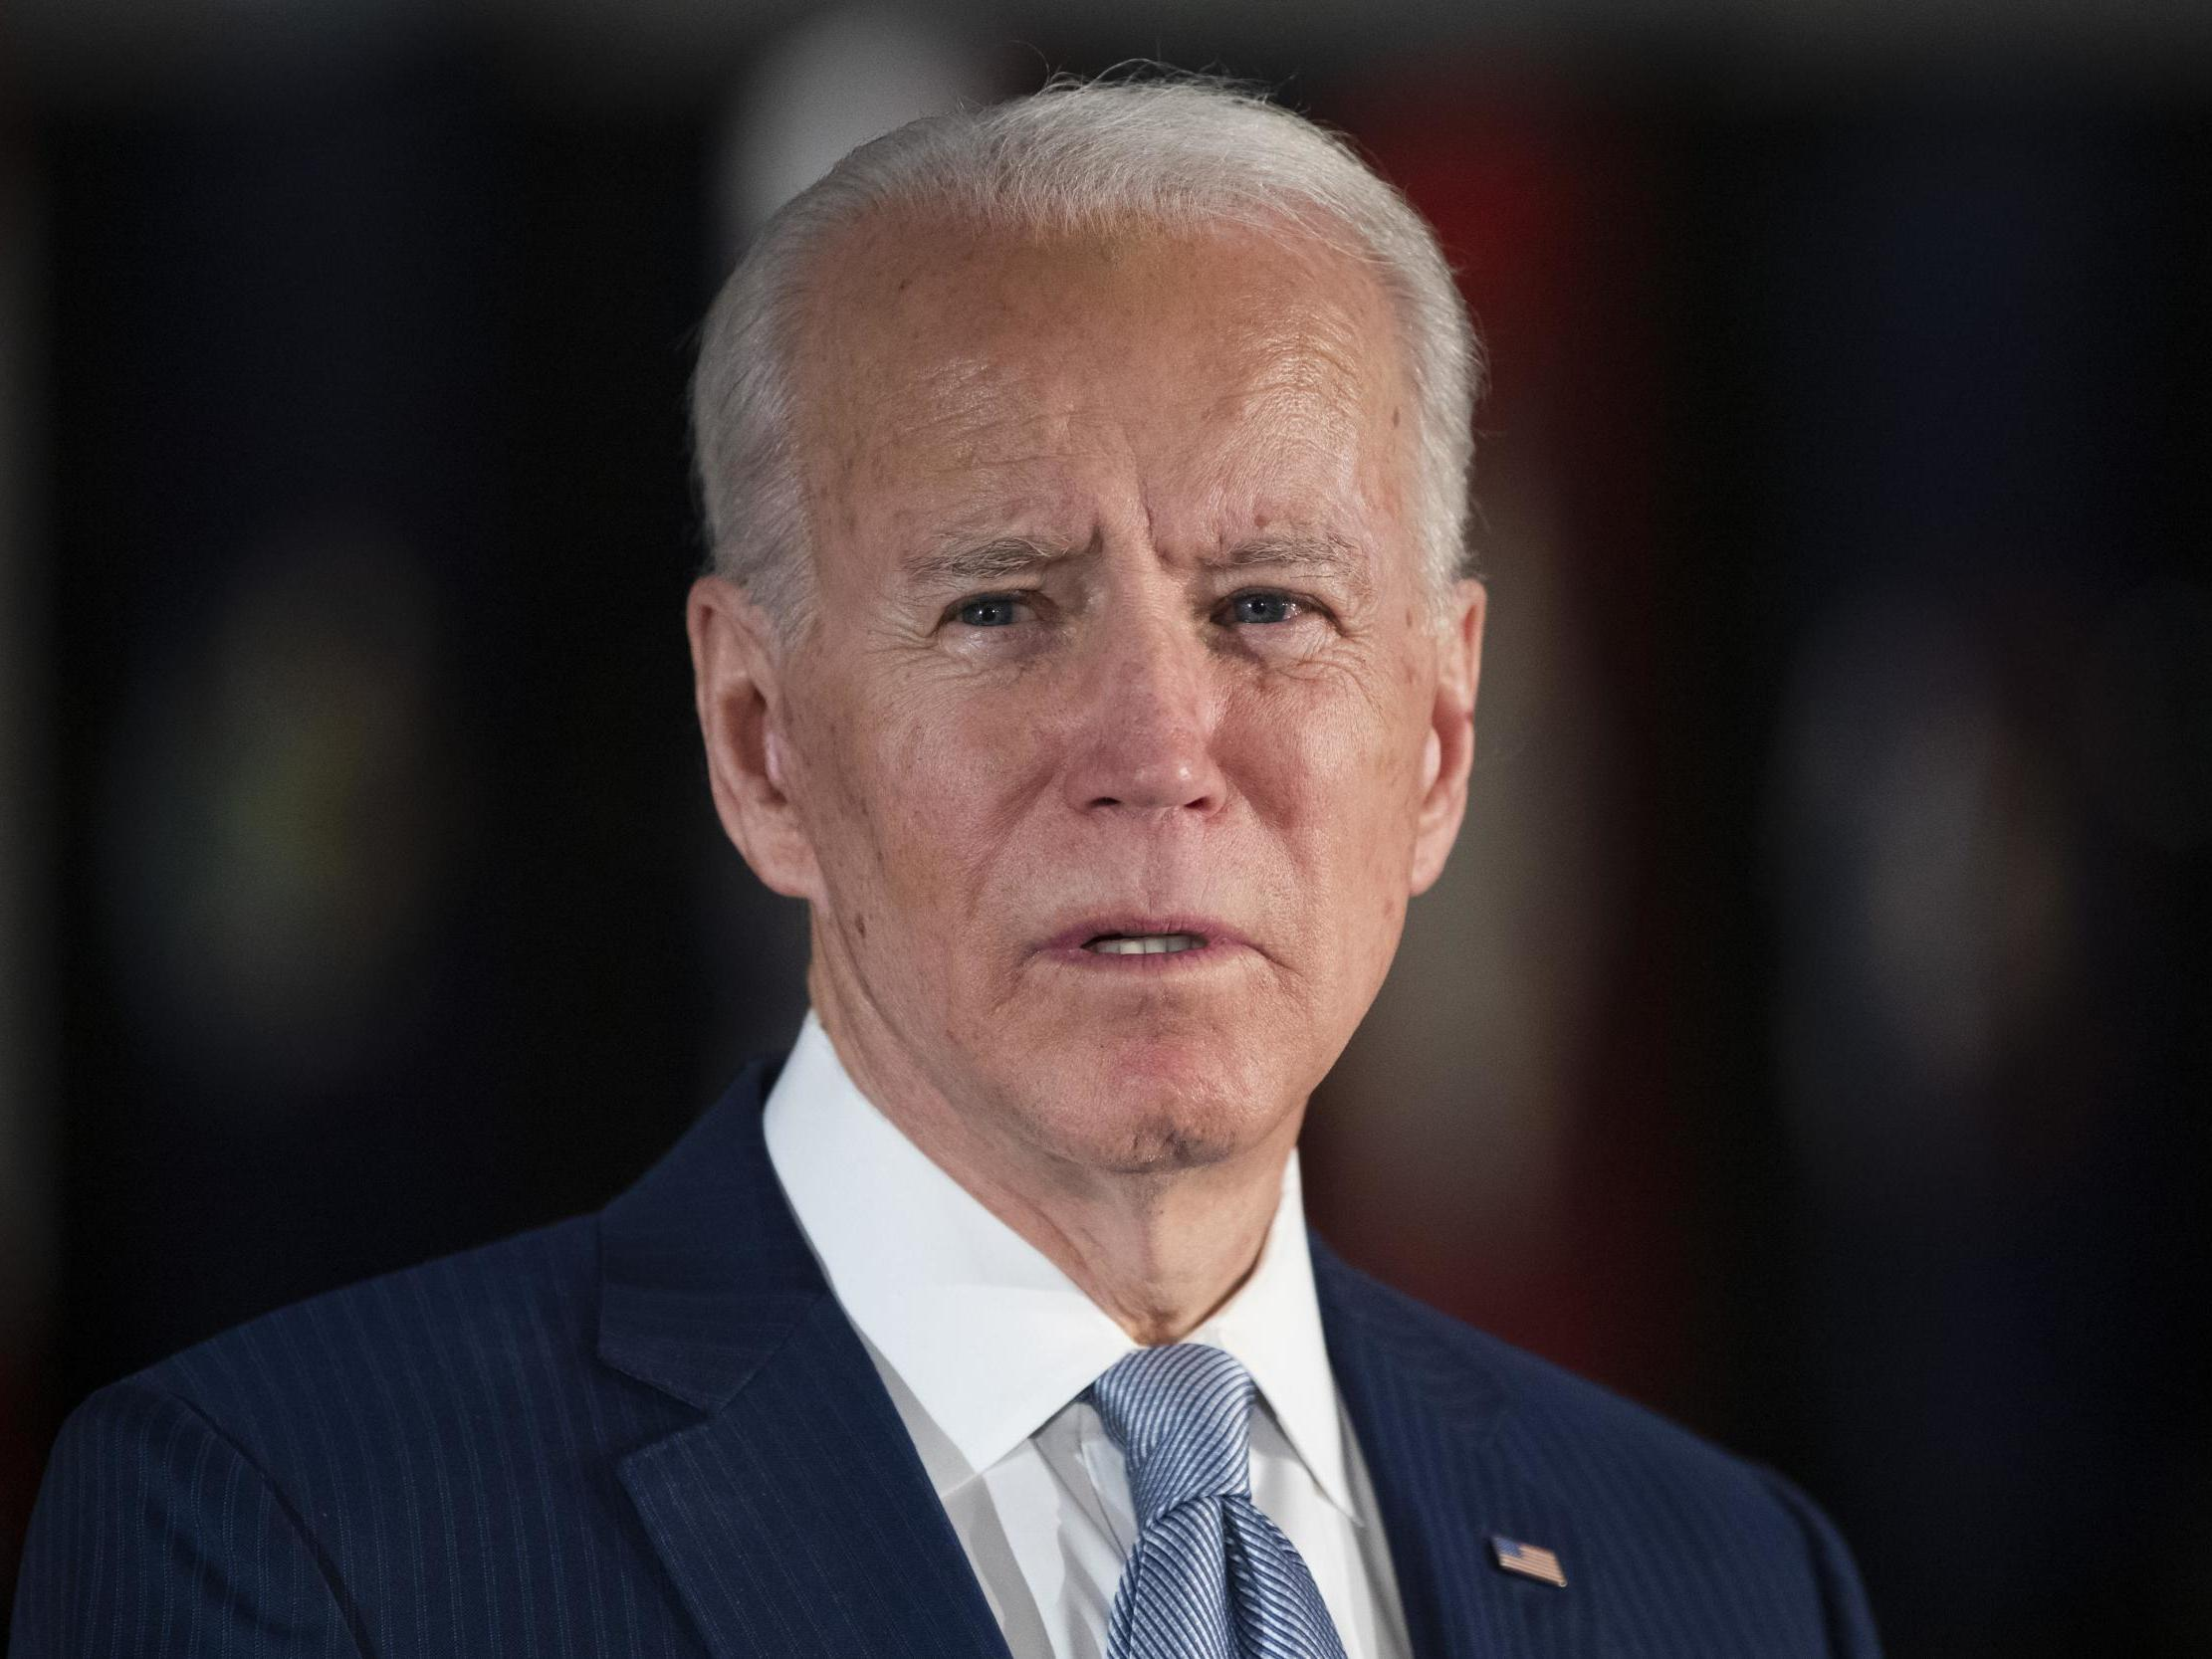 Biden uses Trump's words against him in new campaign ad attacking president's handling of coronavirus thumbnail